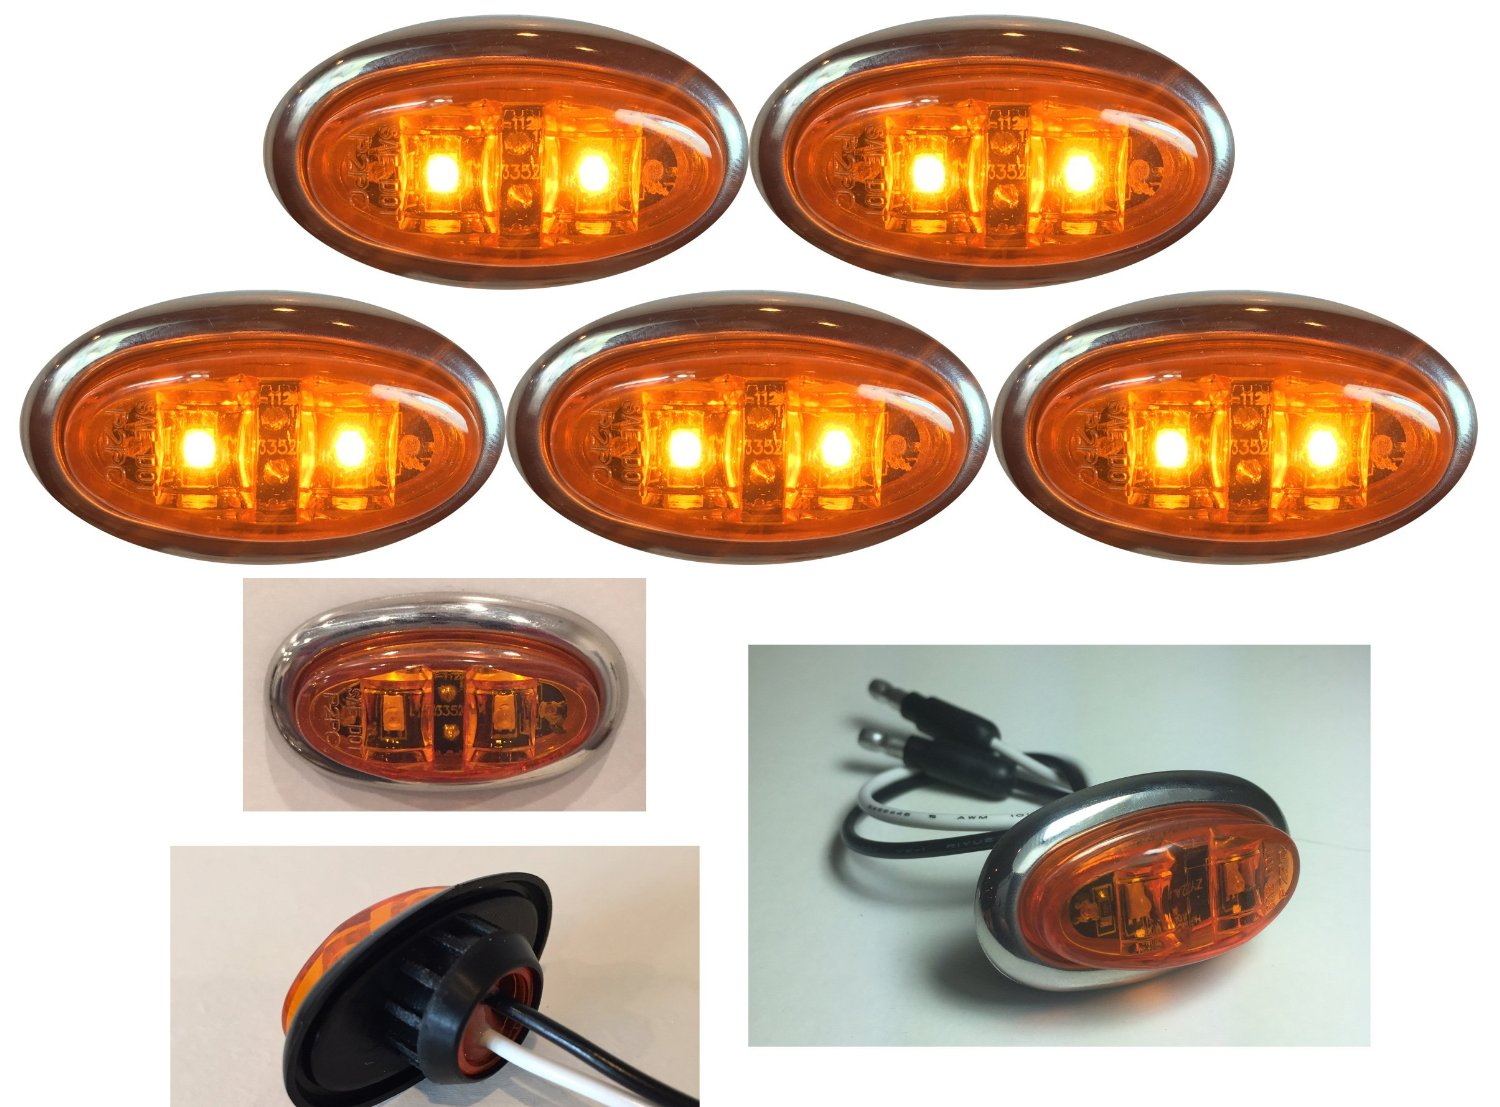 """5 LONG HAUL AMBER AMBER MINI OVAL 2 LED DIODES 2"""" X 3/4"""" .75"""" CLEARANCE MARKER TRAILER TRUCK LIGHTS W BULLET ENDS AND STAINLESS STEEL TRIM RING"""